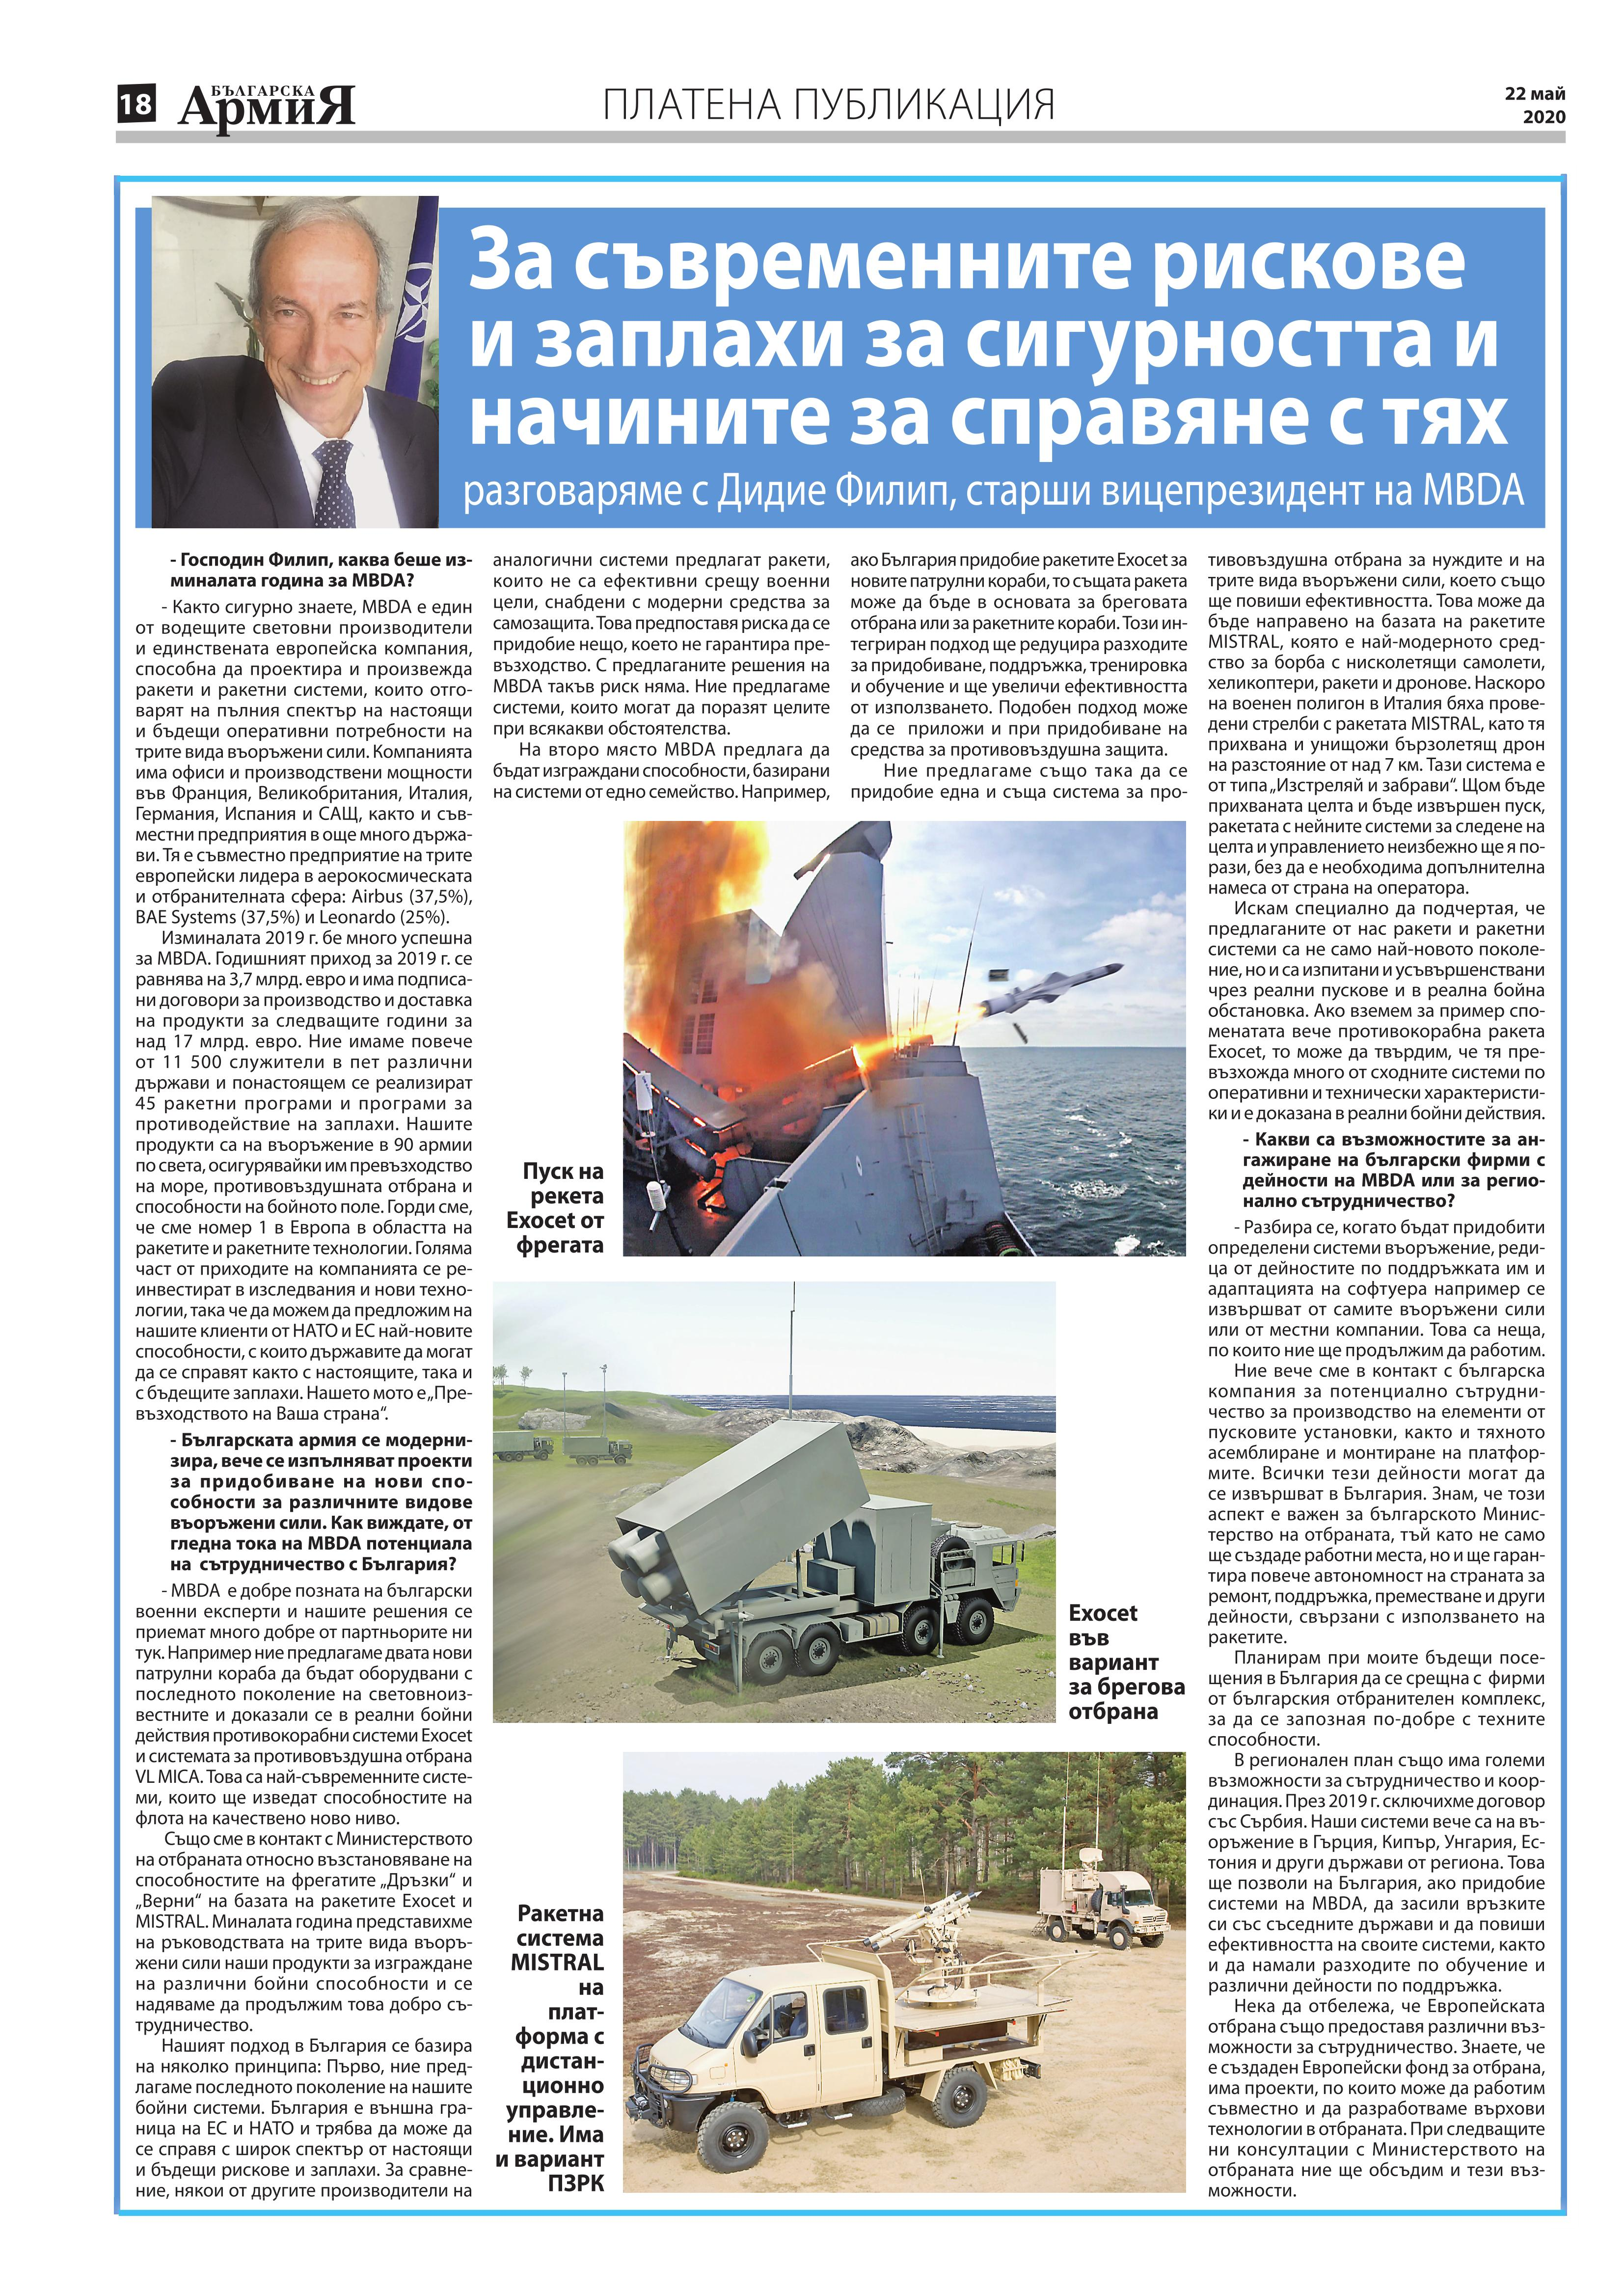 https://armymedia.bg/wp-content/uploads/2015/06/18.page1_-140.jpg